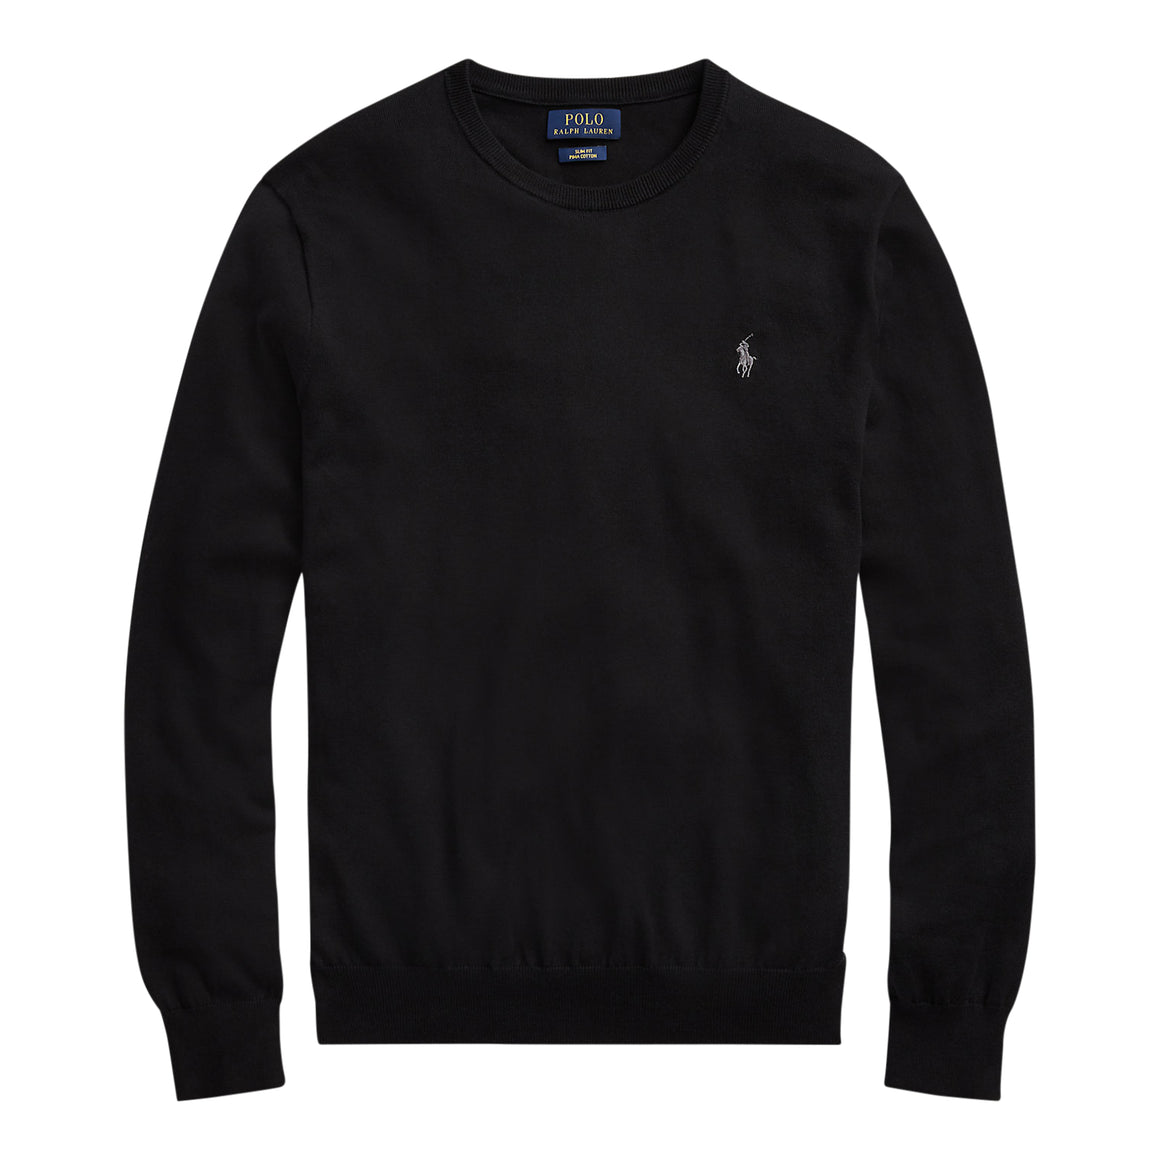 Slim Fit Cotton Sweater for Men in Black